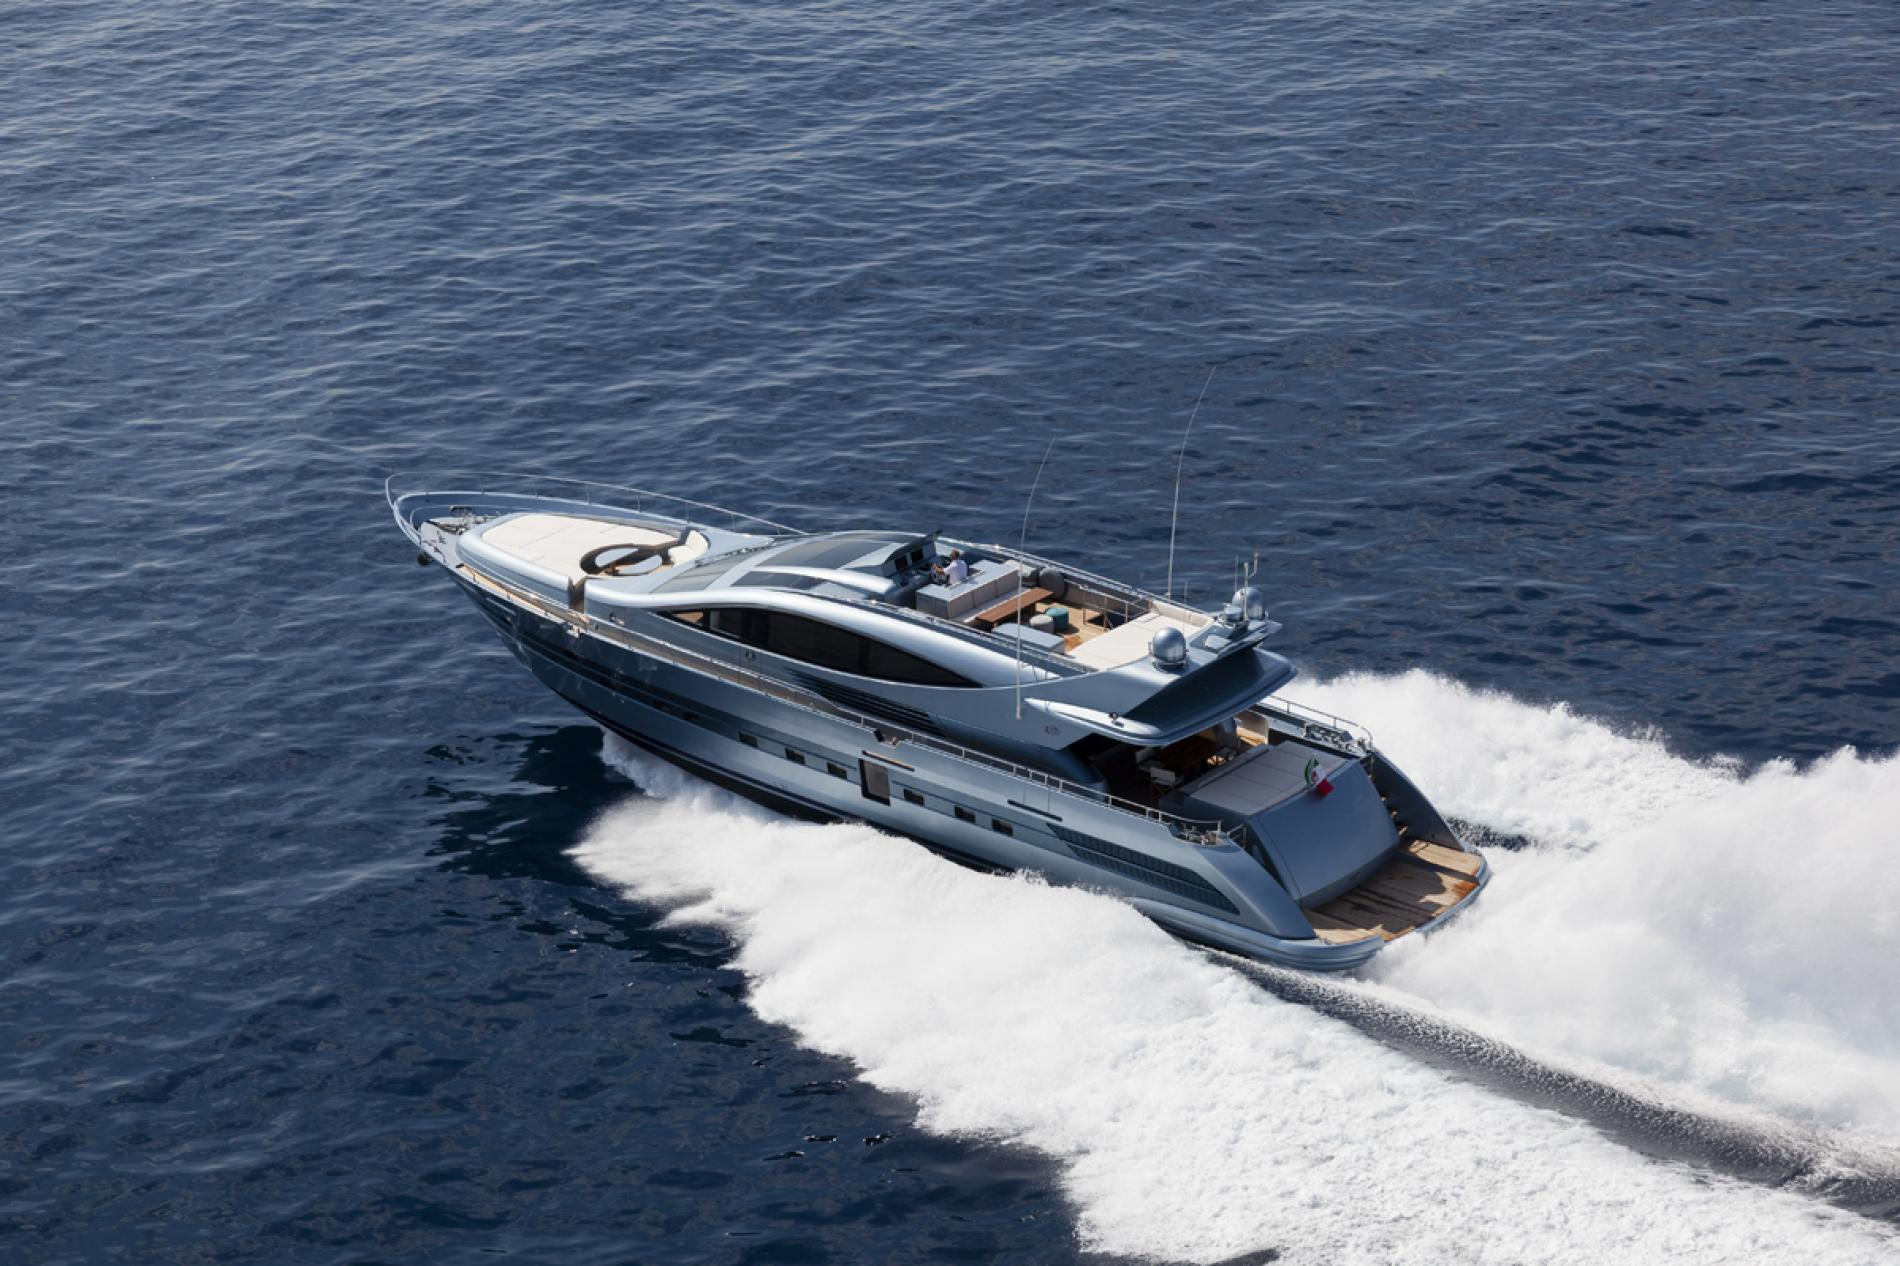 Yate FIFTYFIVE disponible en el Mediterráneo Occidental